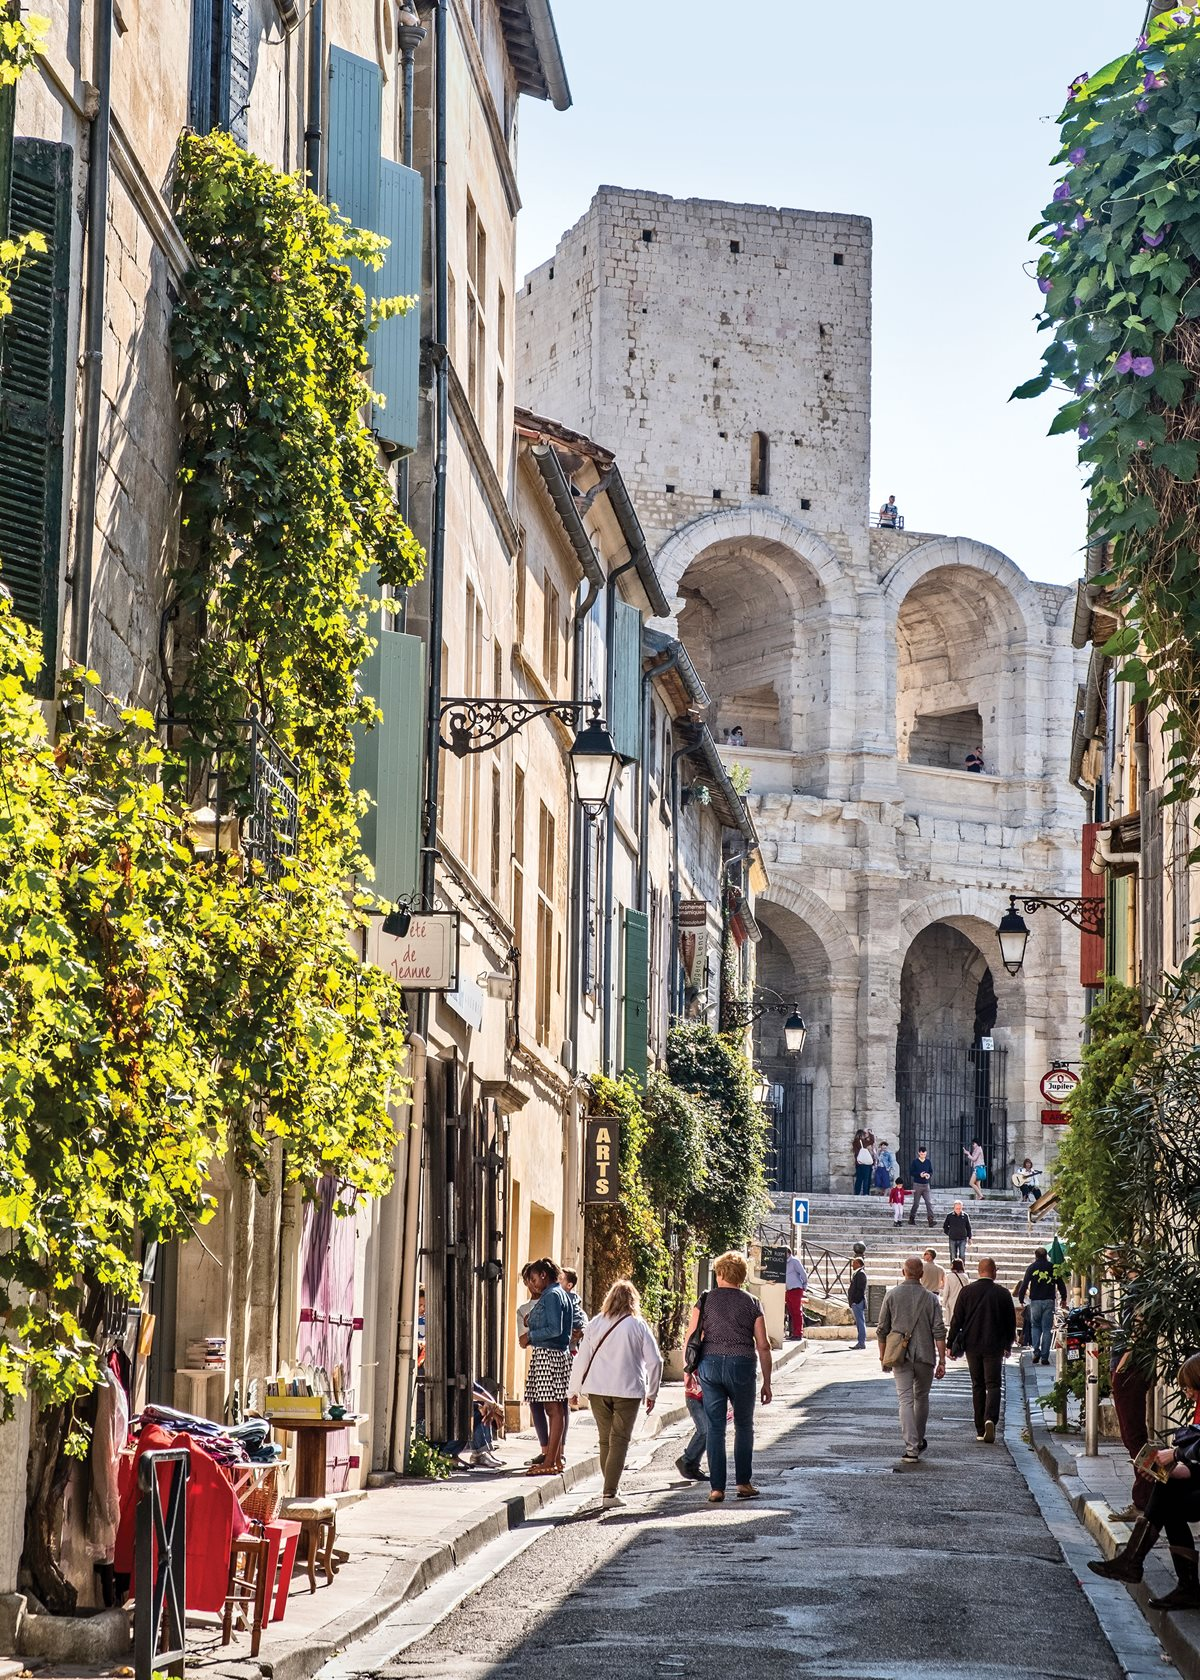 Afternoon strolls in the heart of Arles.    Photo by Picavet/Getty Images